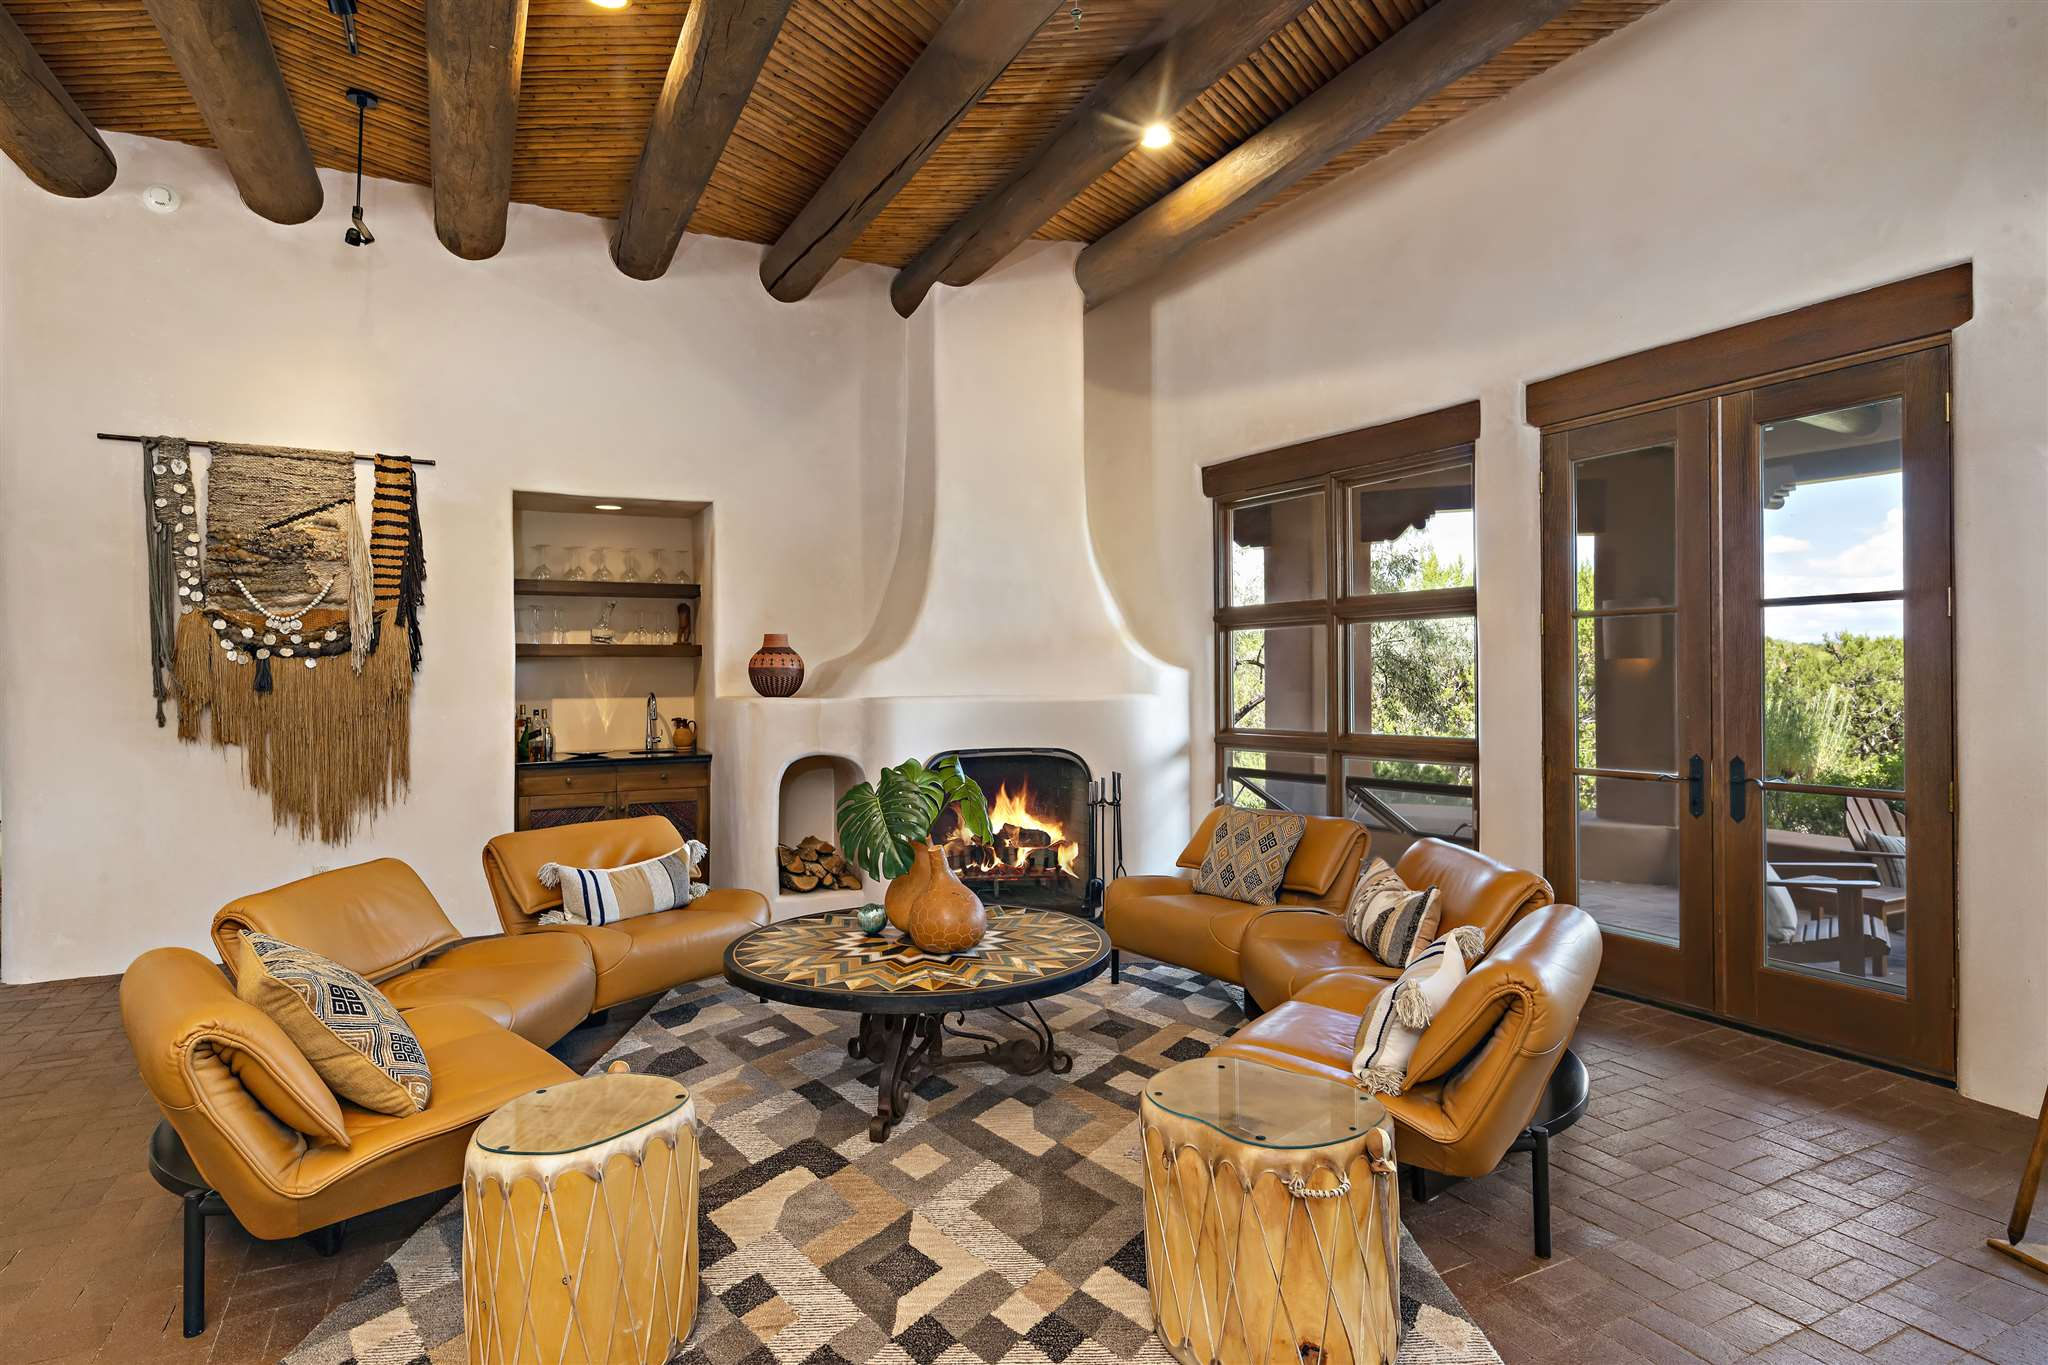 Transitional / Soft Contemporary home in Gated Las Campanas has it all -- Sangre de Cristo Views, 3 Bedrooms + Office, 3 ½ Baths, 3-Car Garage, In-ground Spa/Hot Tub & Spacious Roof Deck to take in the expansive 360-degree views. Great Room includes an area w/ a TV & Kiva Fireplace as well as another conversation area w/ an equally impressive Kiva Fireplace, Wet Bar plus a Sangre de Cristo view. Dining area can accommodate a large round or octagonal table w/ up to 8 chairs. Kitchen offers a Sub-Zero refrigerator, Bosch Dishwasher, Dacor Gas Cooktop & Ovens plus Butler's Pantry & Wine Cellar. Kitchen island has Prep Sink & built-in Buffet area to create ample counter & storage space. Master Bedroom includes a Kiva Fireplace, Spacious Walk-in Closet, Access to a private portal area & private retreat for reading or contemplation. Master & Office have refrigerated A/C. Master Bath offers separate sinks, two separate compartmented toilets, new shower with body sprays & direct access to the Spa / Hot Tub & Outdoor Shower. Two secondary bedrooms are located on the opposite side of the home for privacy from the Master, each with their own baths. Outdoors has a multitude of desirable features - Private In-Ground, Spa/Hot Tub, Outdoor Shower, Built-in BBQ , Expansive Roof Deck & Shaded Portal area w/ Outdoor Fireplace to warm the evening air. This fabulous home offers Views, a multitude of desirable features & is in Move-in Ready, making it the perfect residence in Las Campanas.